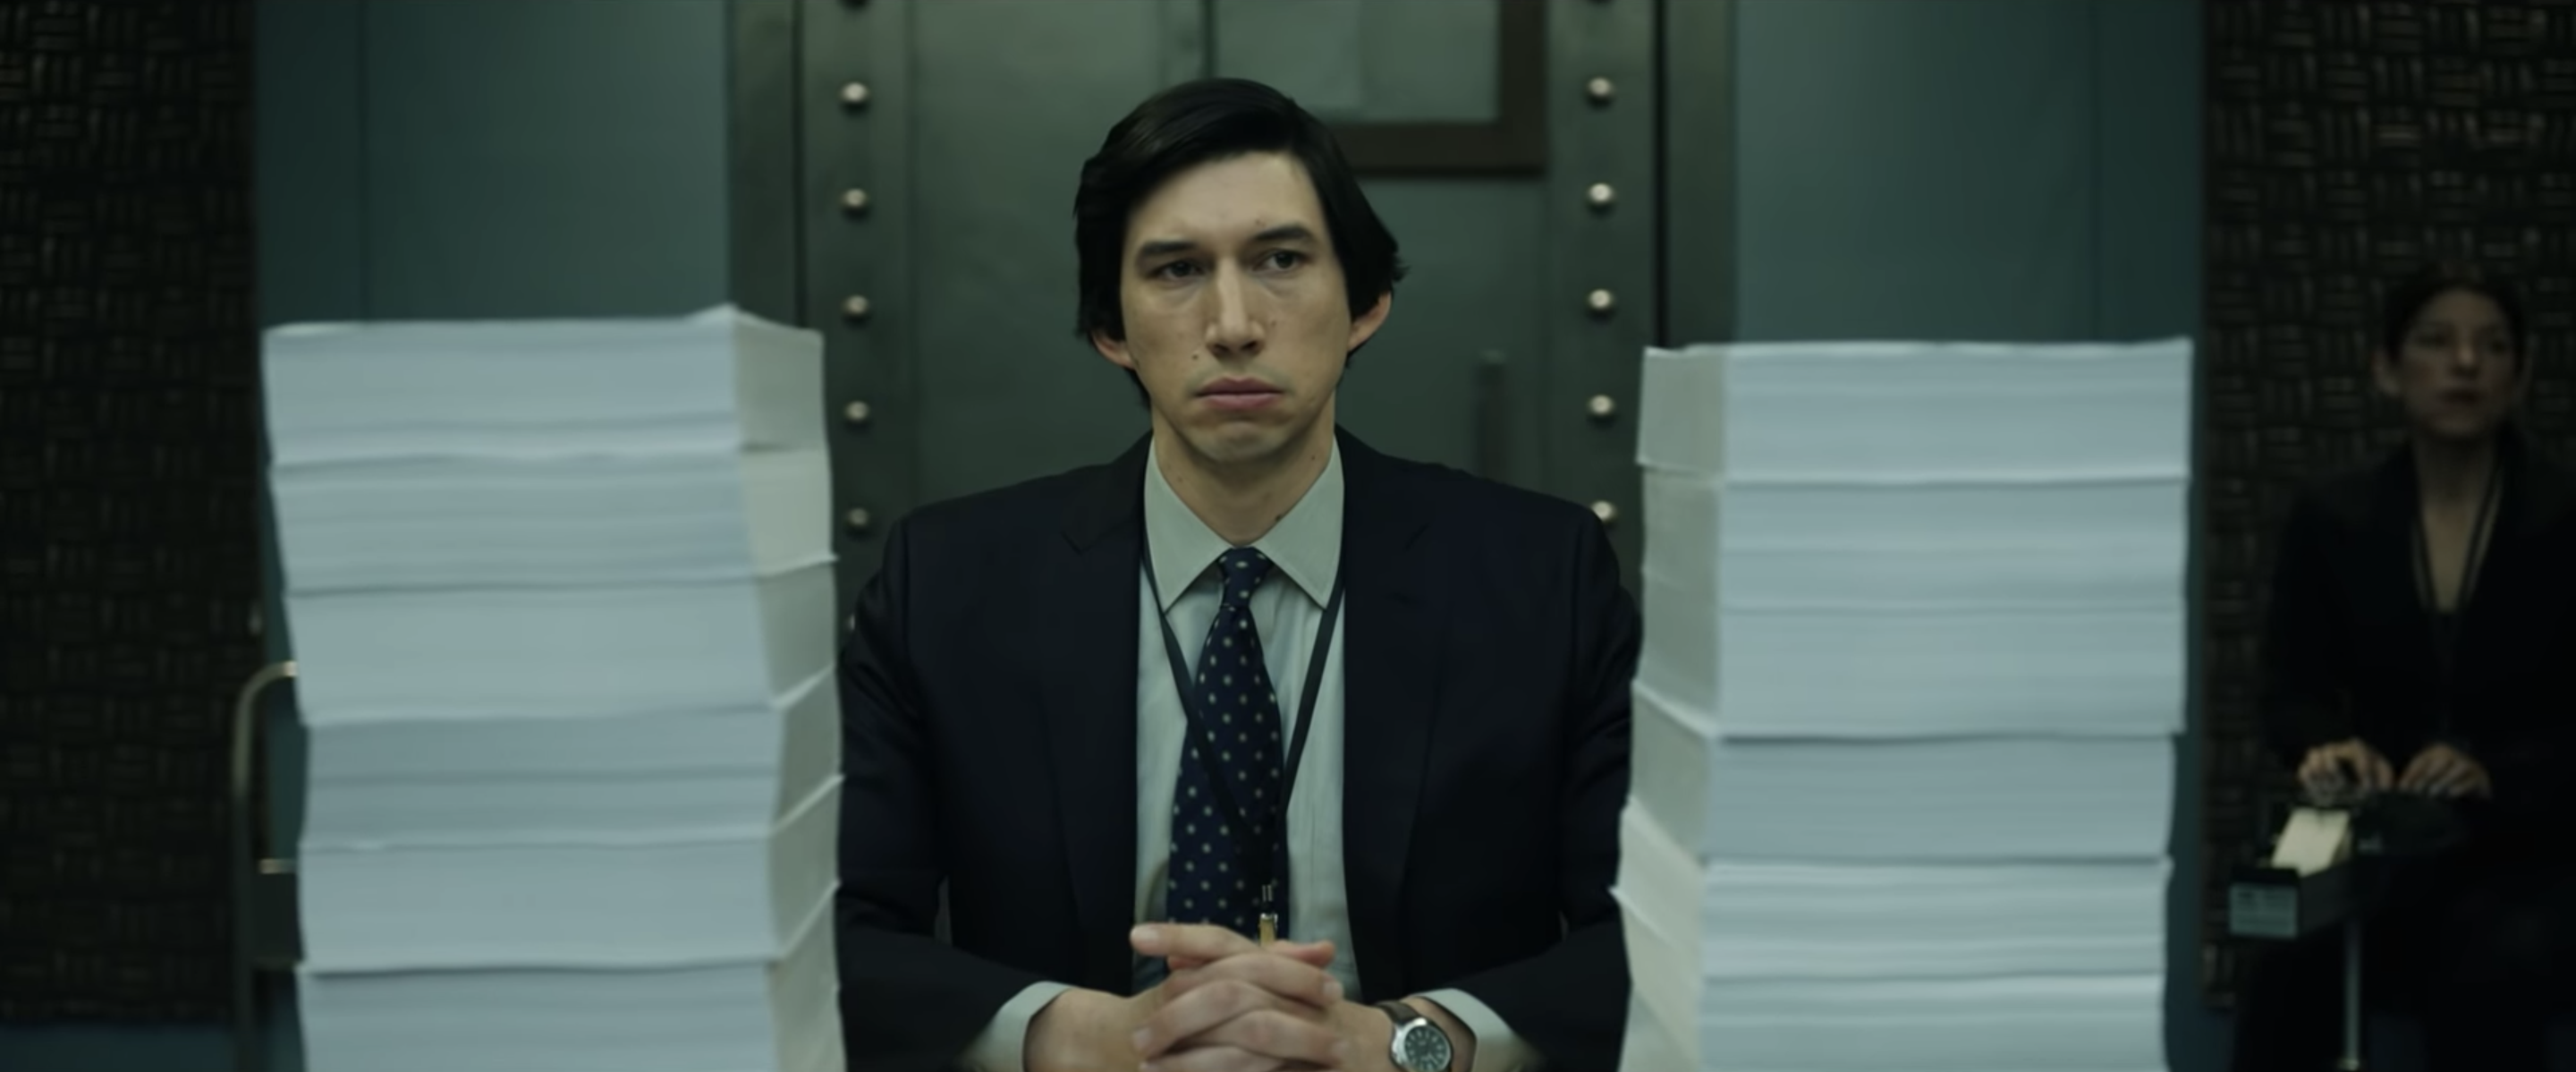 Star Wars: The Rise of Skywalker's Adam Driver investigates 9/11 in chilling first look at new thriller